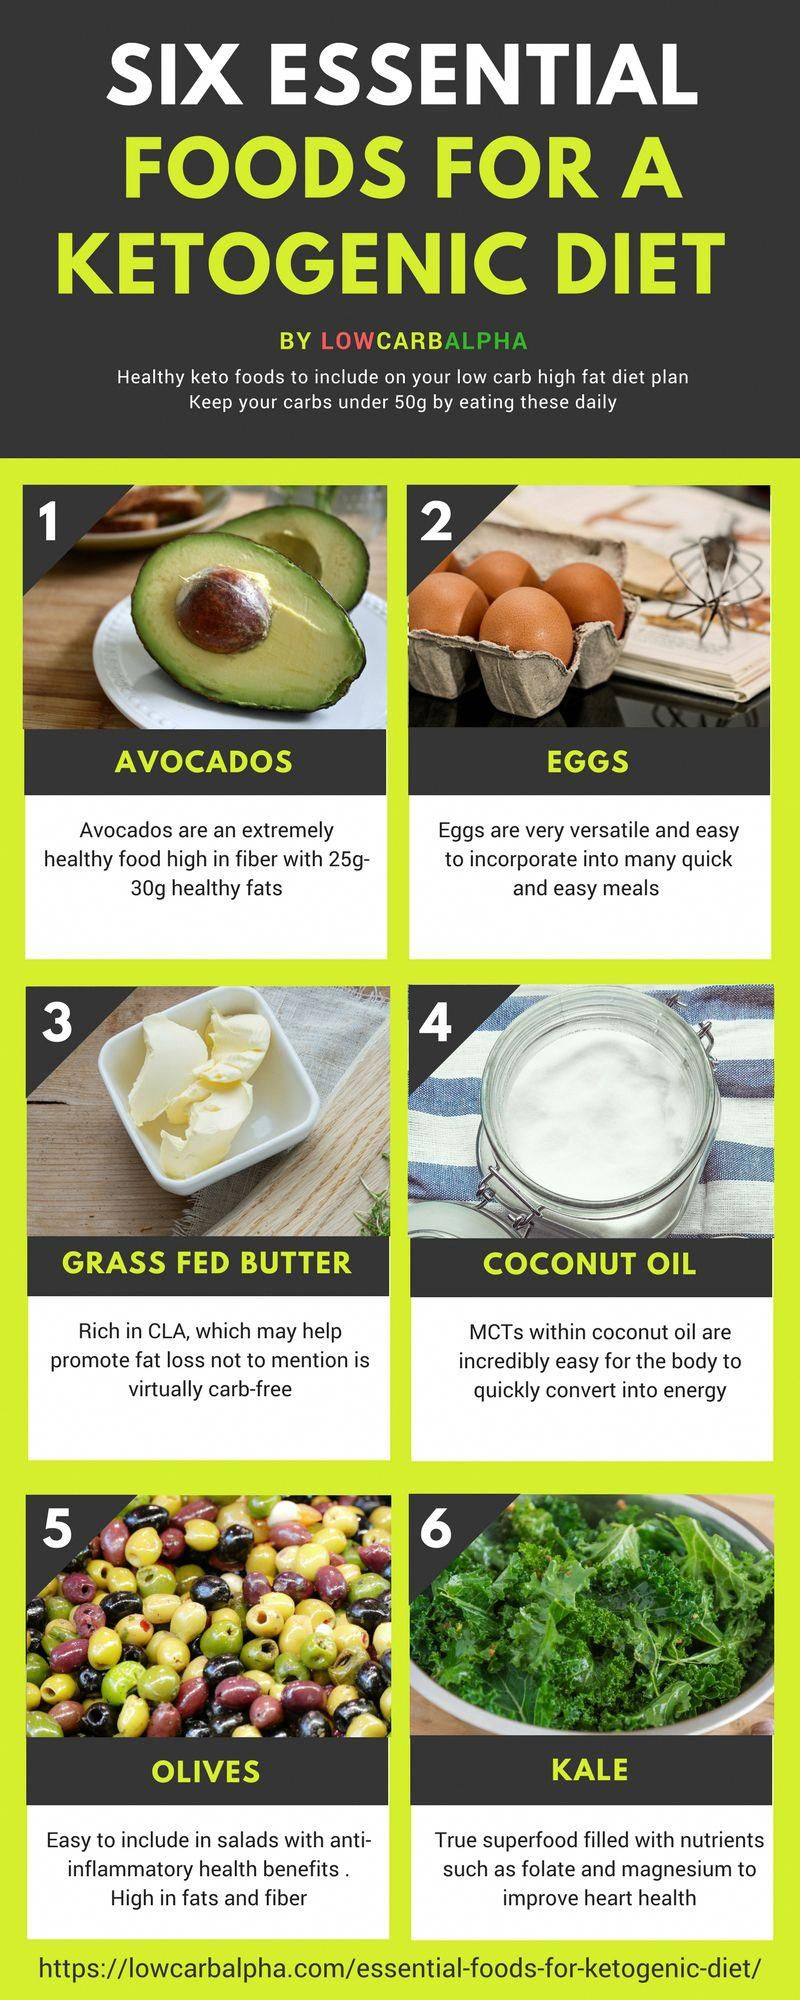 paleo for beginners all you need to know about getting started with paleo diet